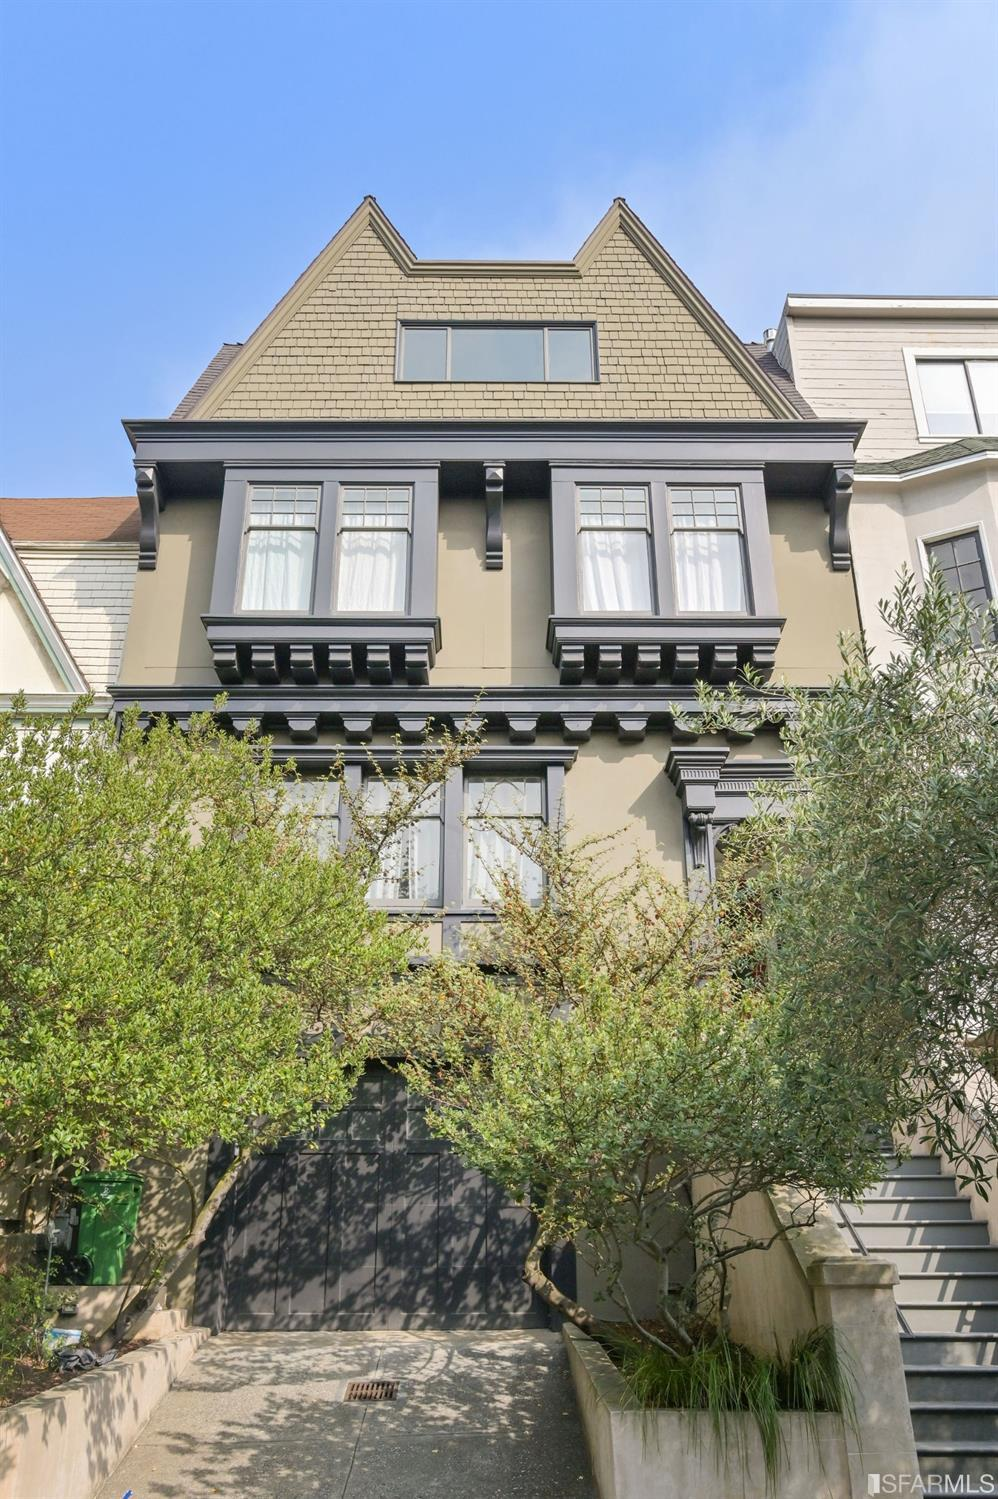 This 3 story Edwardian gem has restored original details, and a spacious floor plan perfect for family, entertaining, and working from home. Substantially renovated; including cost reducing solar panels and upgraded foundation.  Upon entering the entry hall, you are greeted with views of the rear garden. The gracious kitchen features Carrara marble counters, large 7' island, top of the line chef's fixtures, and ample storage. Completing the main level is the living room, half bath, bonus room (home office), and dining room with fireplace. Up the grand staircase, a broad hall leads to two bright bedrooms sharing a full bath, and a luxe owners' suite. The owners bathroom has clawfoot tub, marble tiled floors and shower room. 2 walk-in closets and additional closet storage. The top floor bedrooms offer flexible space and refreshing views.  The home also has a massive garage with storage, laundry room, and a beautifully landscaped patio. Prime location near amenities and parks.